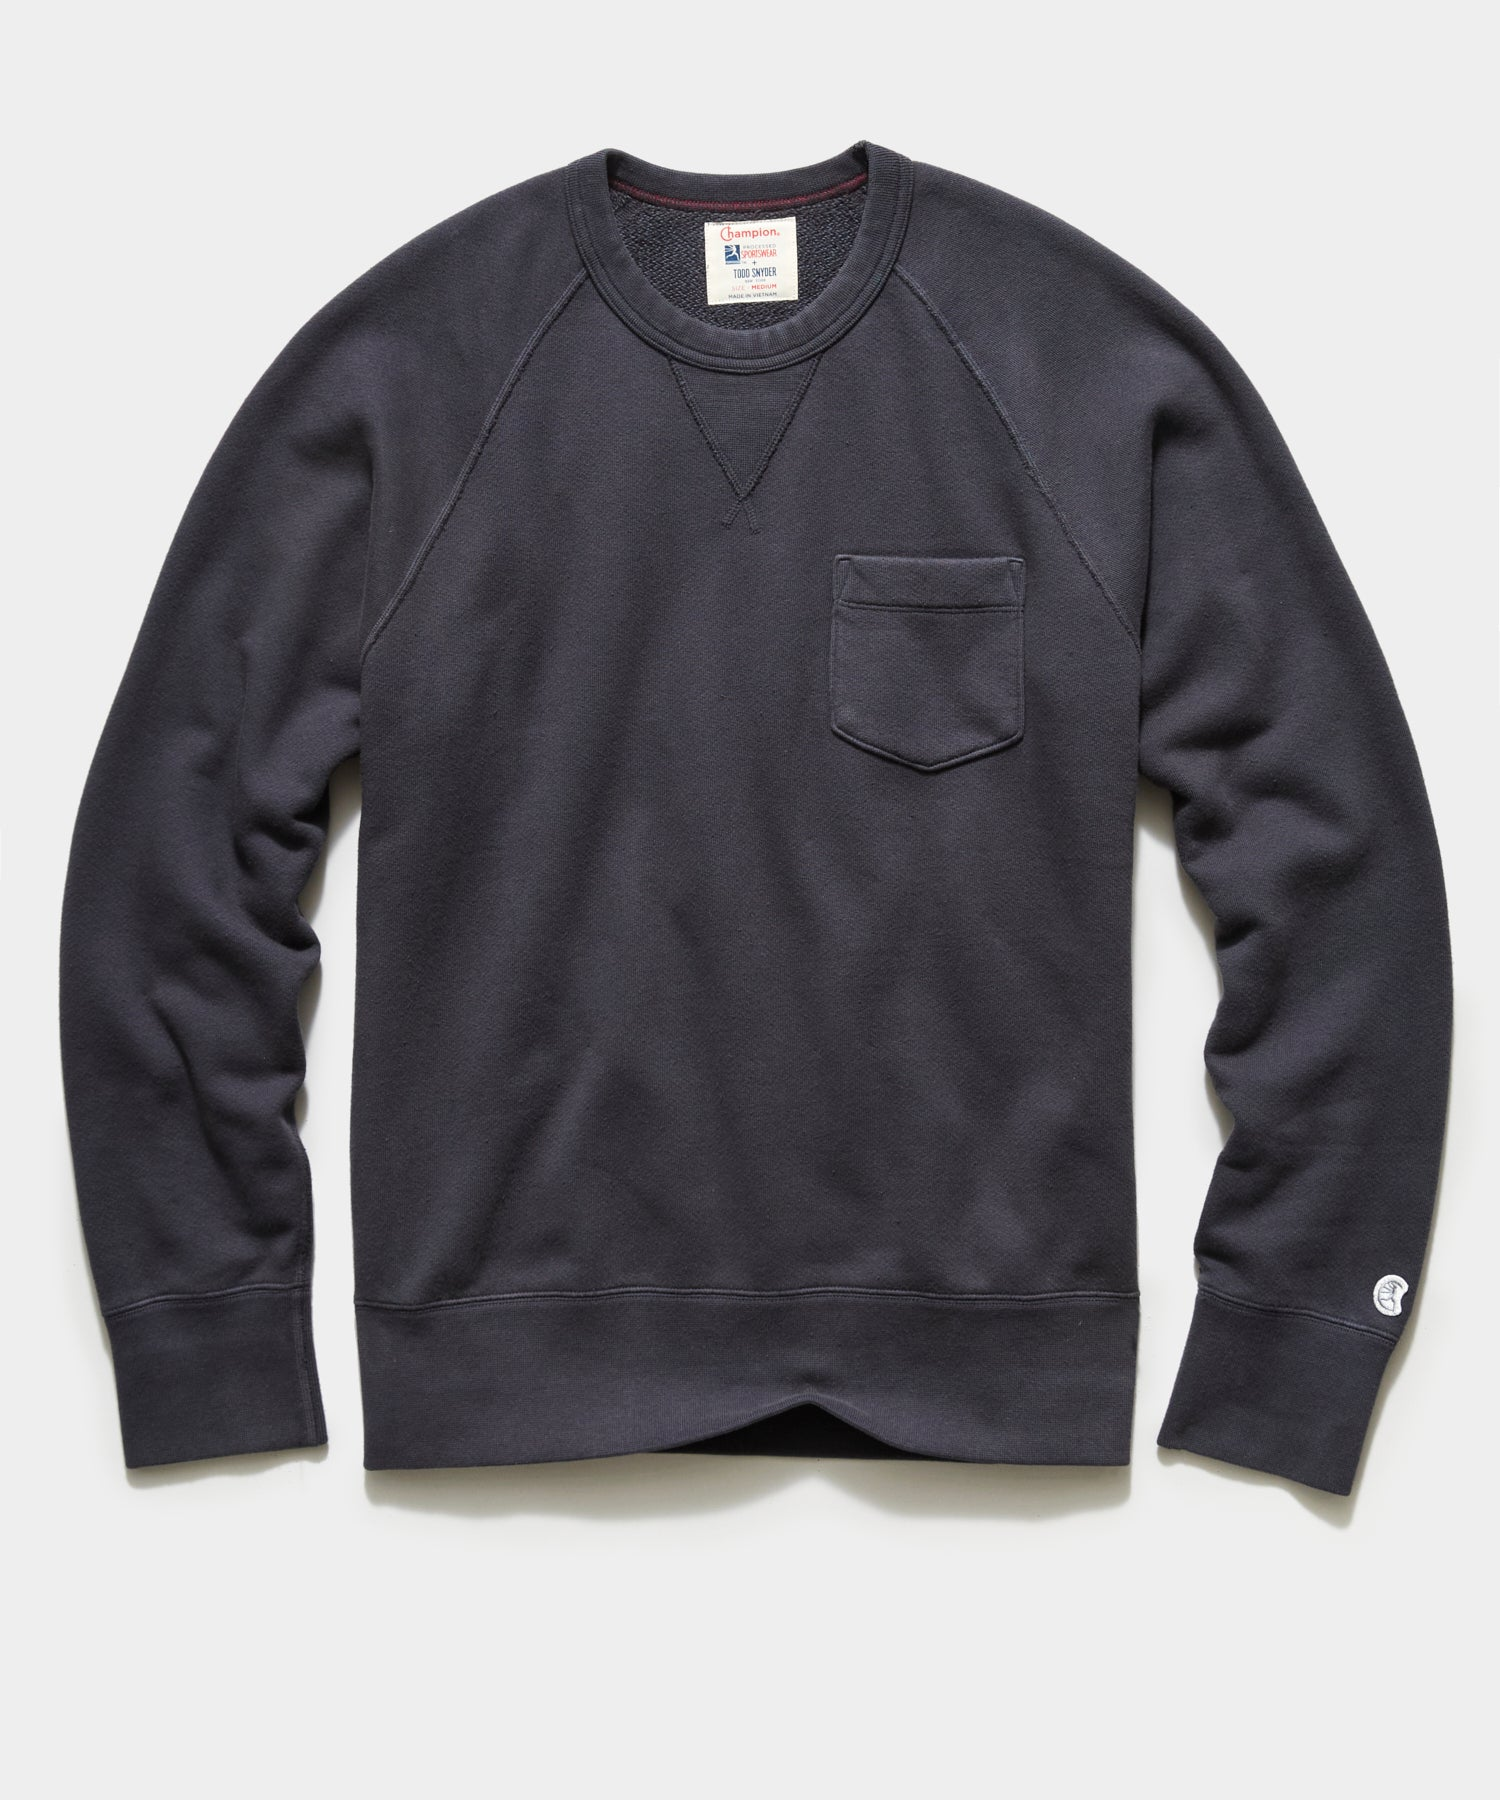 Midweight Pocket Sweatshirt in Asphalt